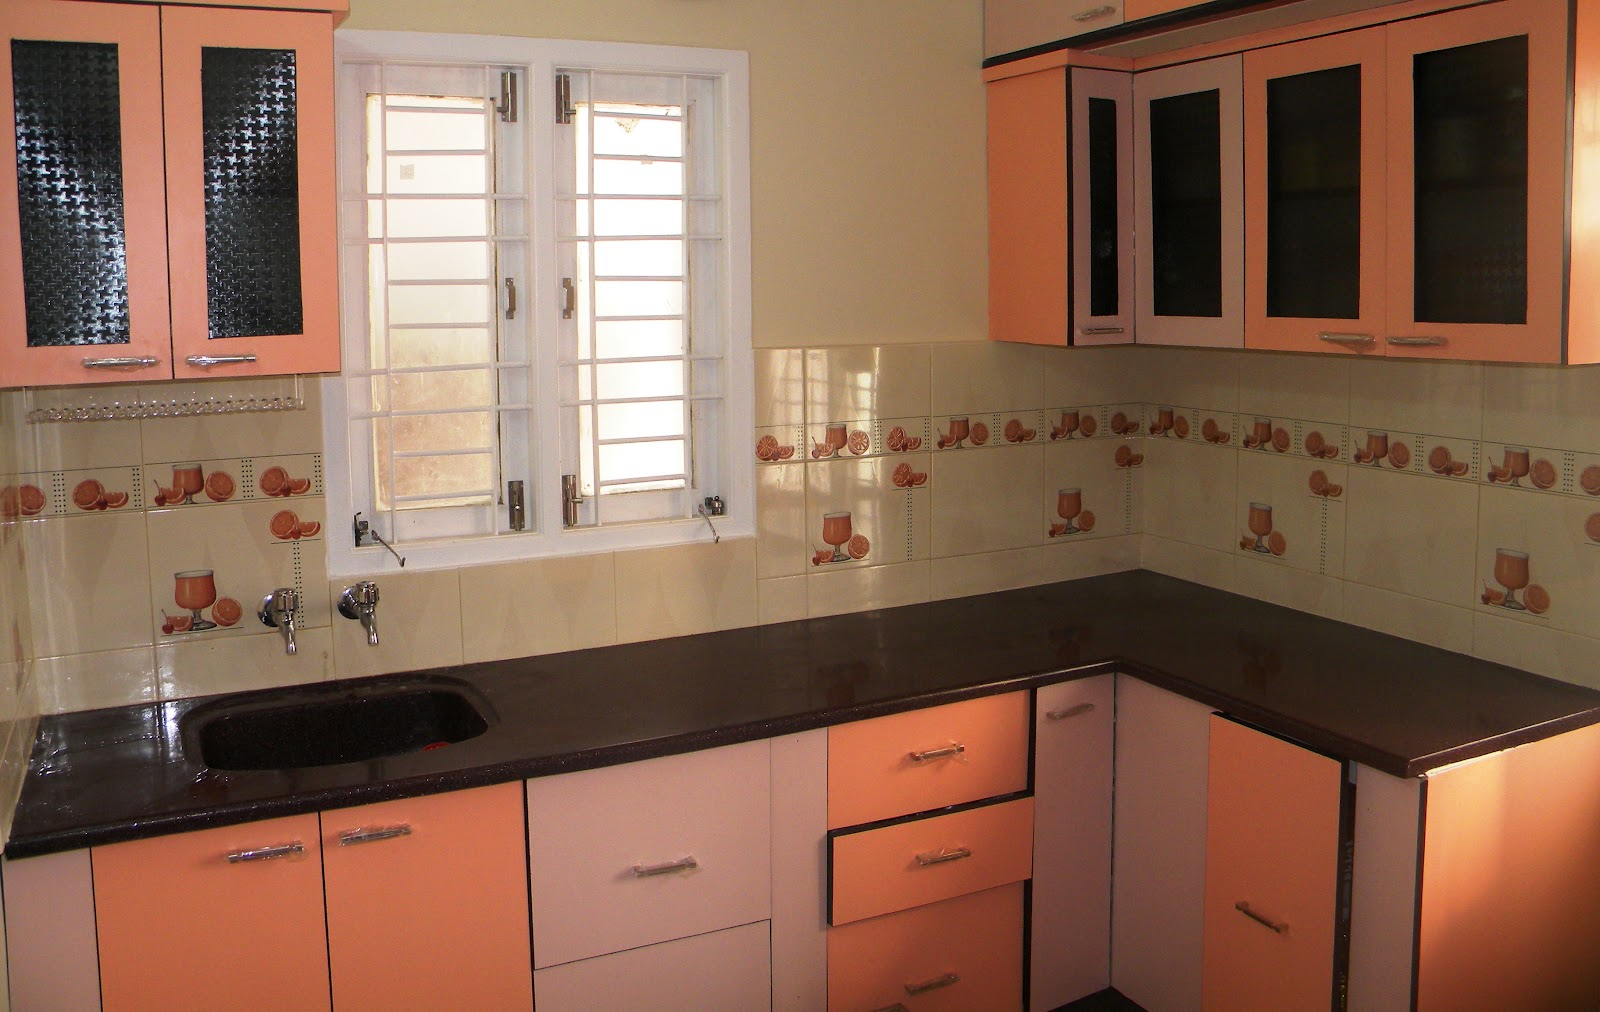 Indian kitchen interior design photos middle class picture for Indian house interior designs kitchen